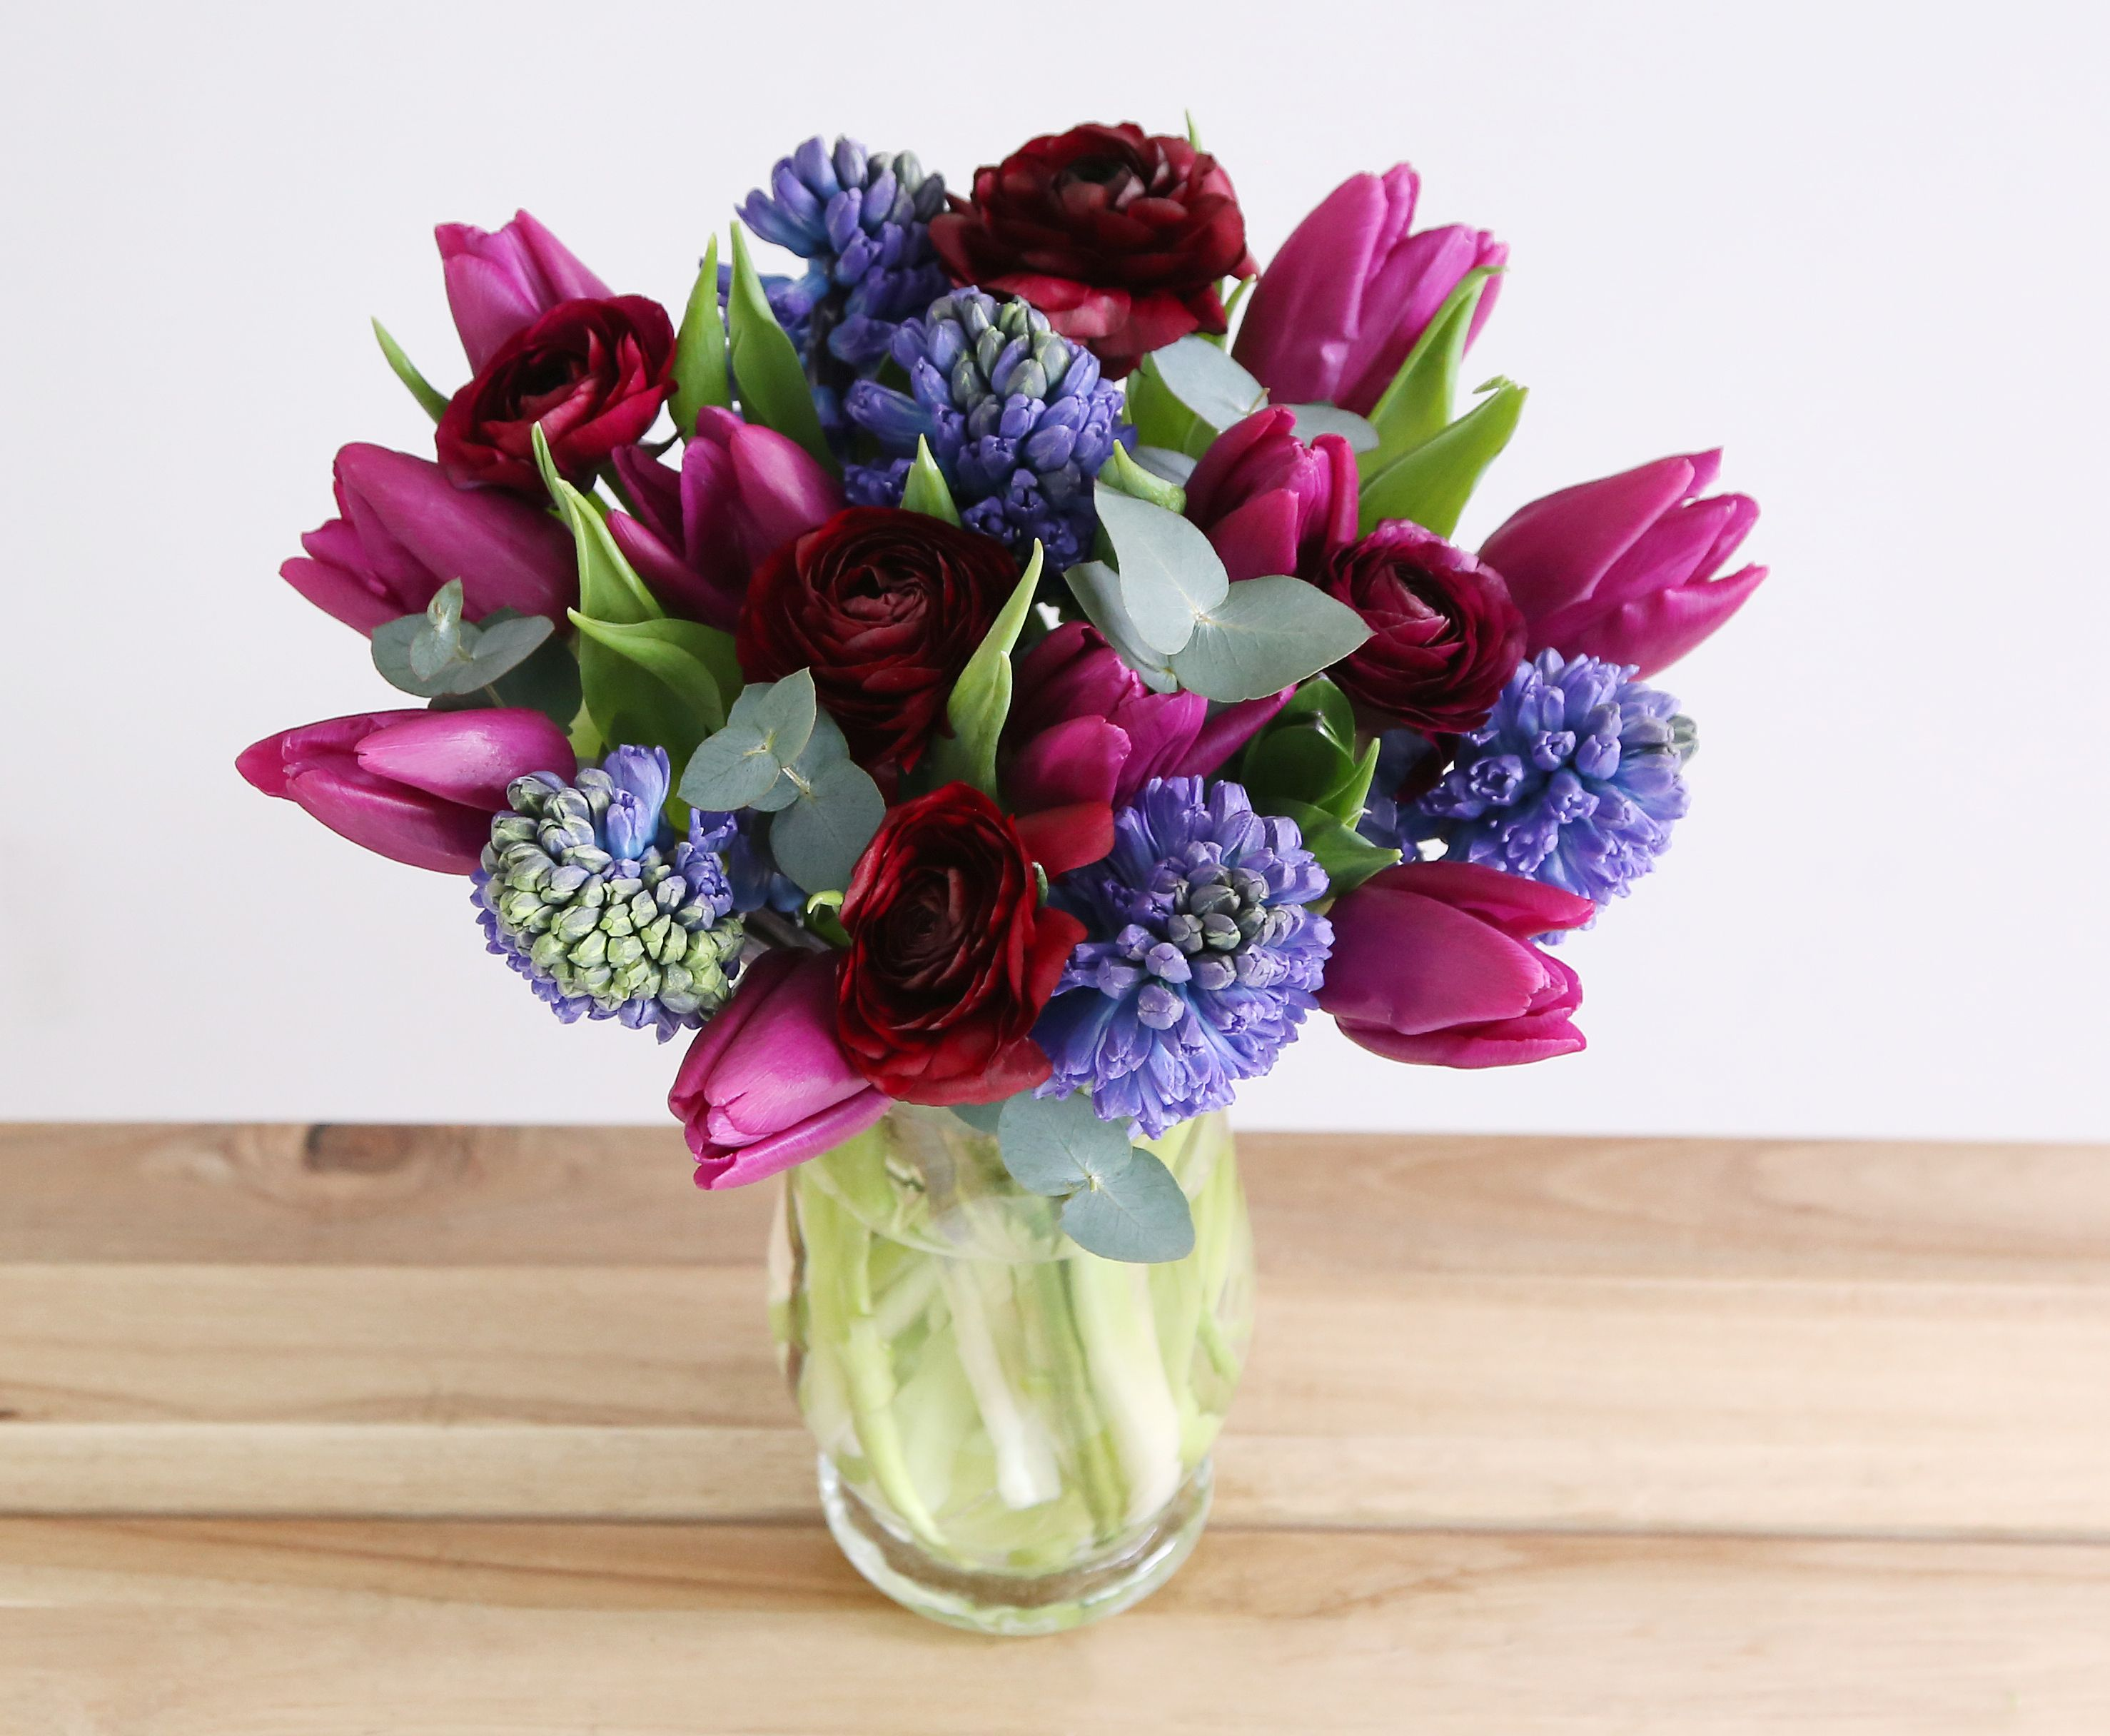 Indigo bouquet 5 blue hyacinth 10 purple tulips 5 purple call now on 0800 0350 flower delivery london uk from leading online flower shop arena flowers izmirmasajfo Gallery